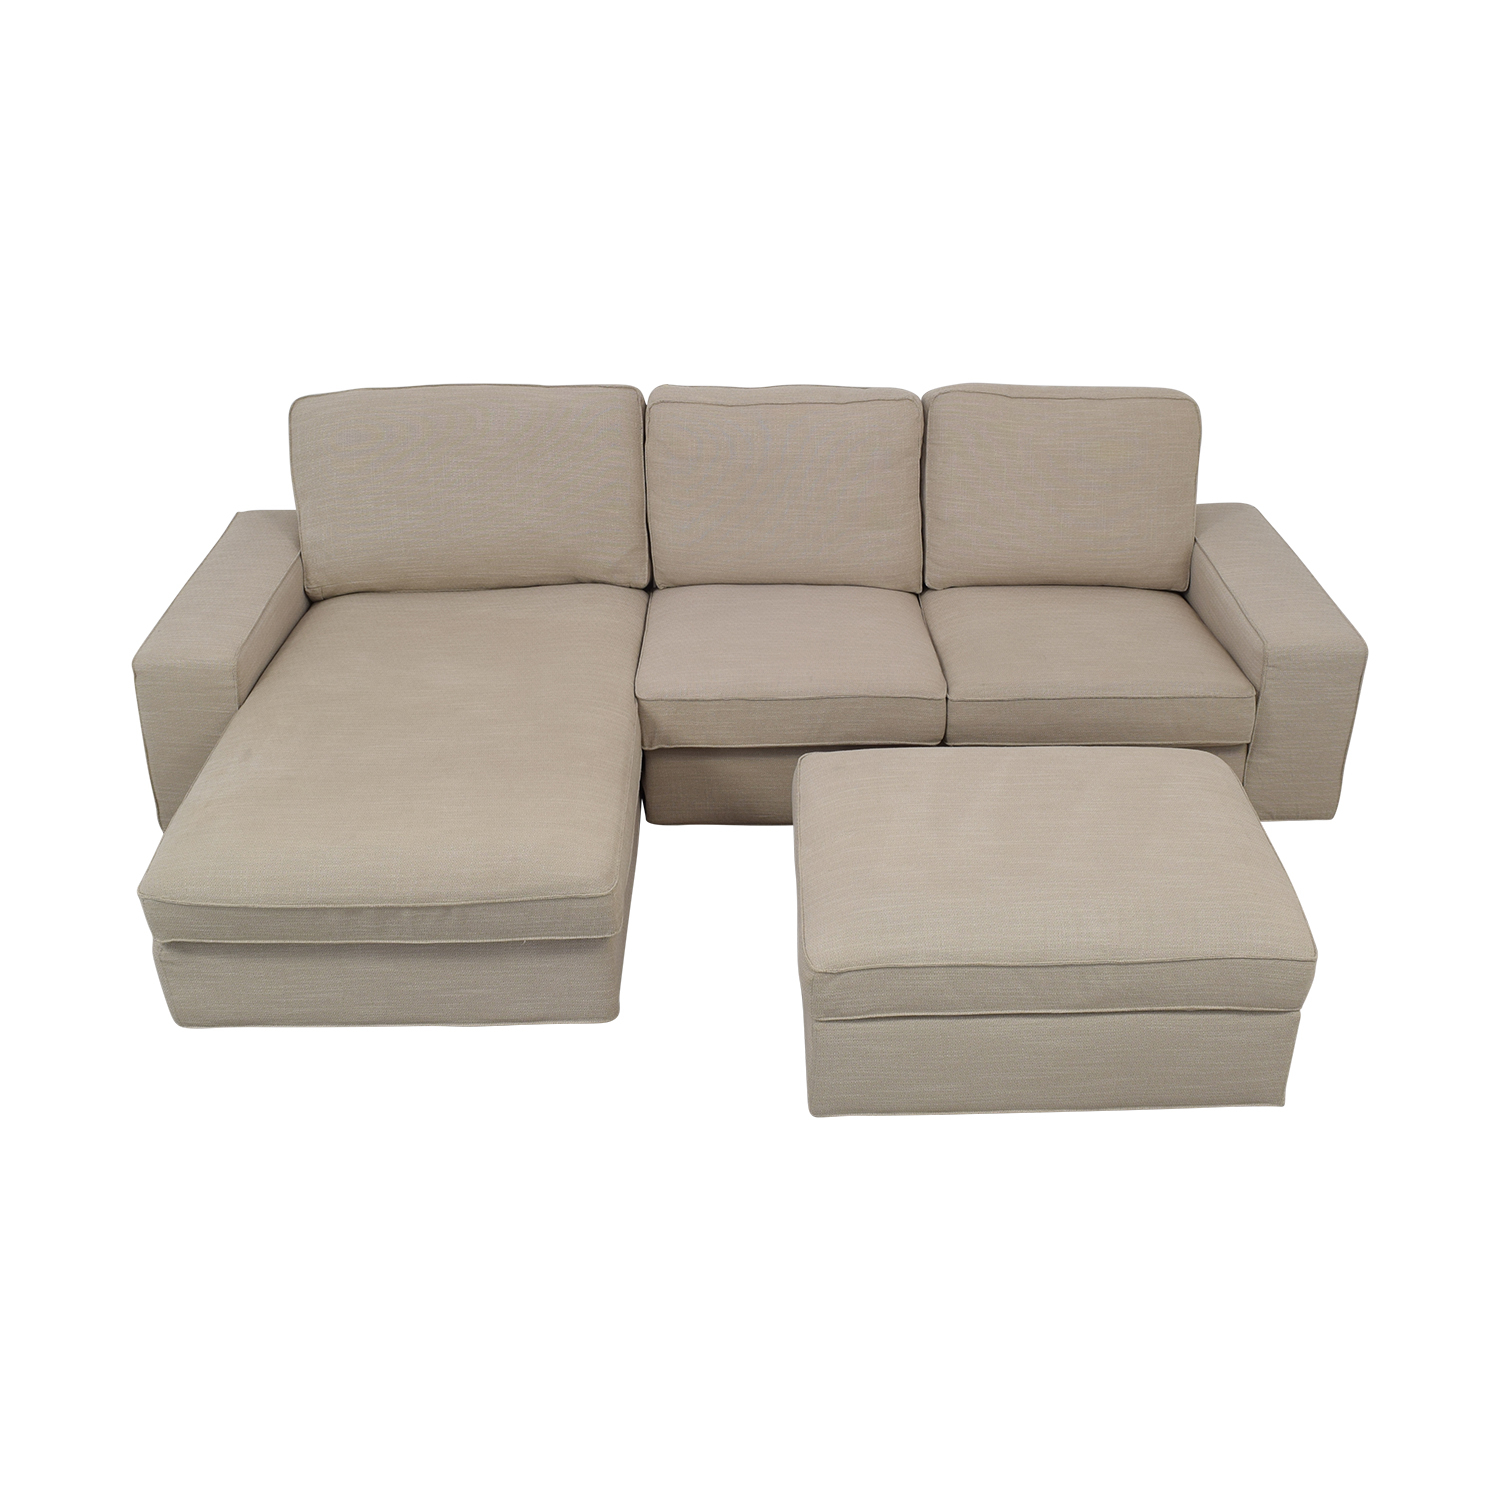 IKEA IKEA KIVIK Chaise Sofa with Ottoman Tan